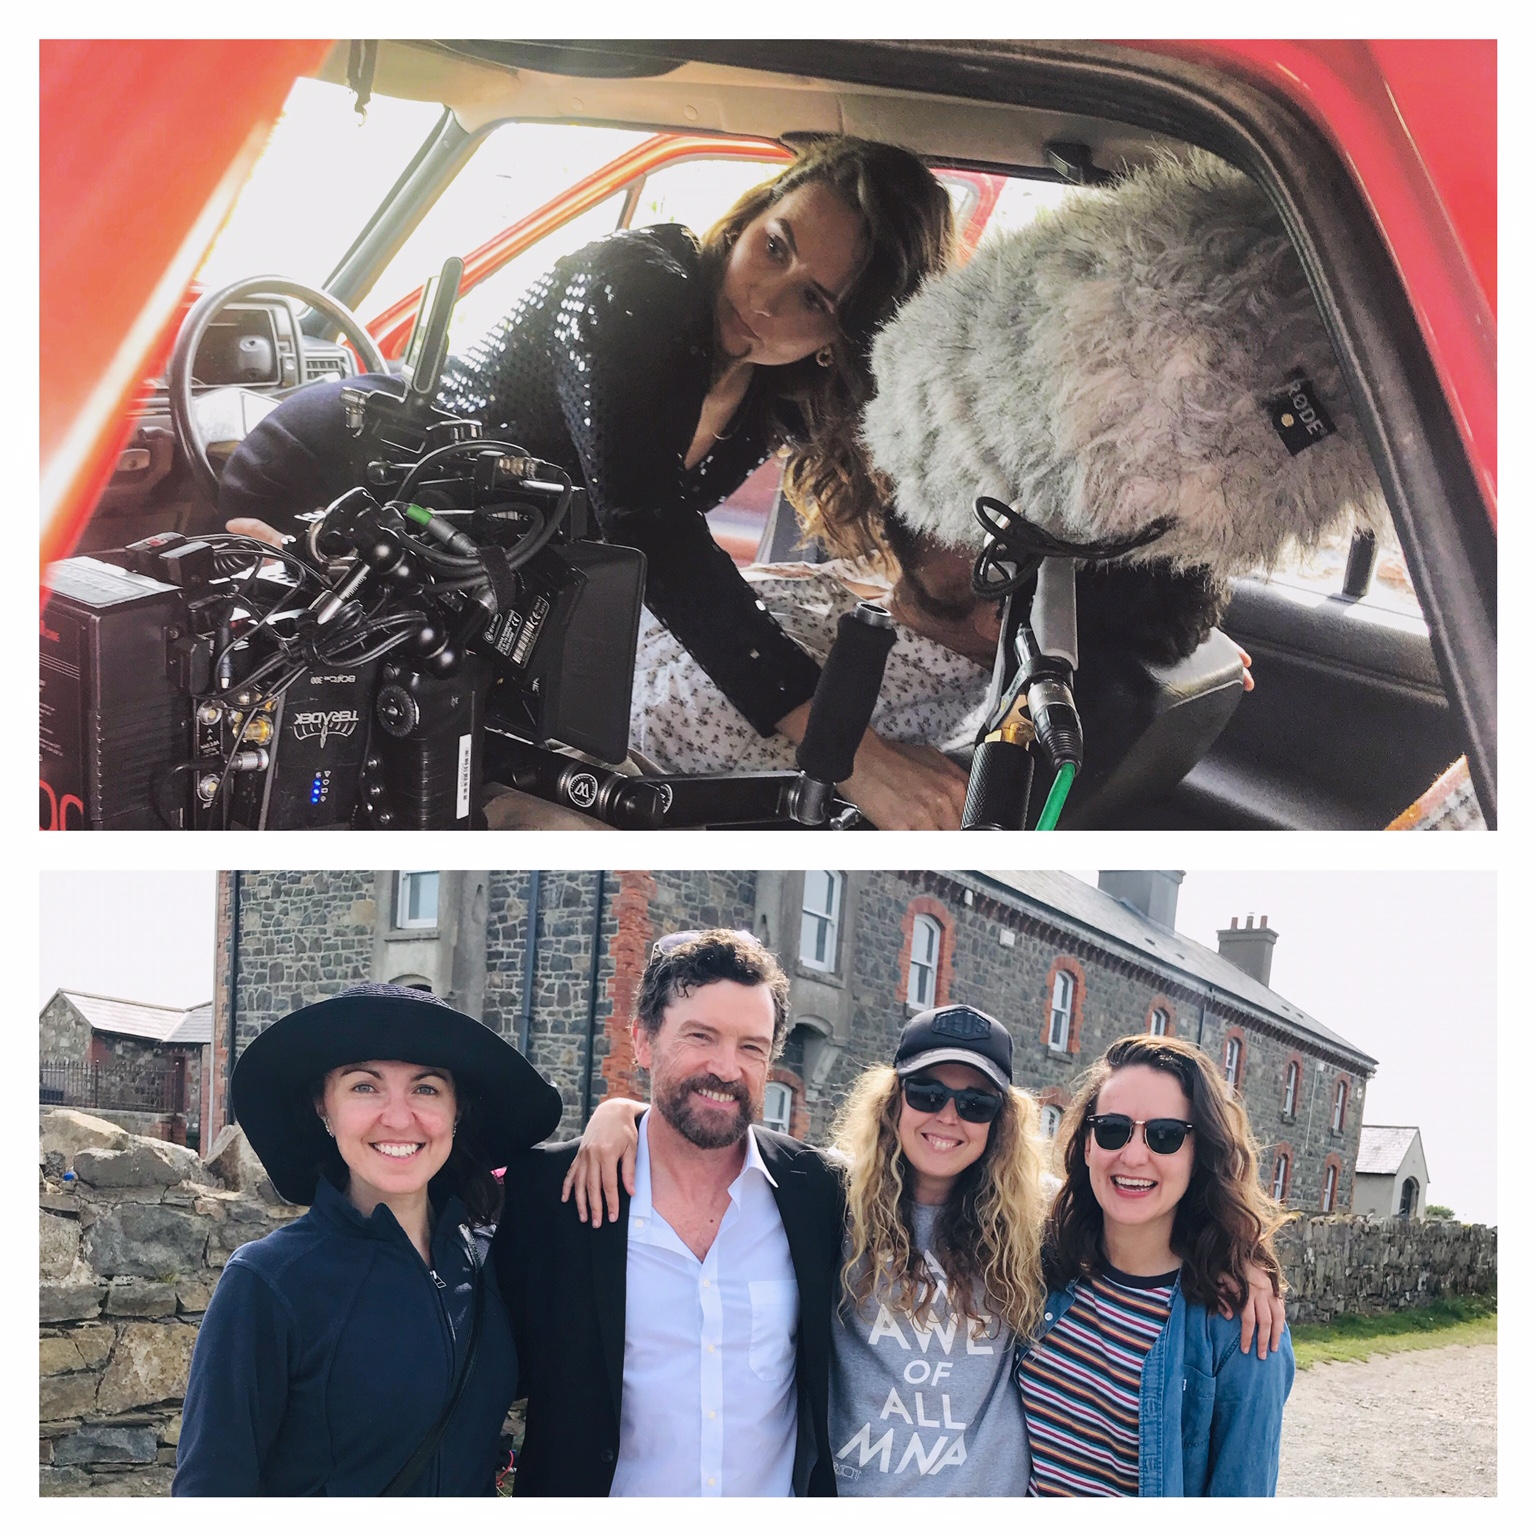 Amy wraps on Mick Flannery's new music video 'Wasteland' feat. Steve Wall, dir. Sinead McDevitt, Cinematography: Ash Barron